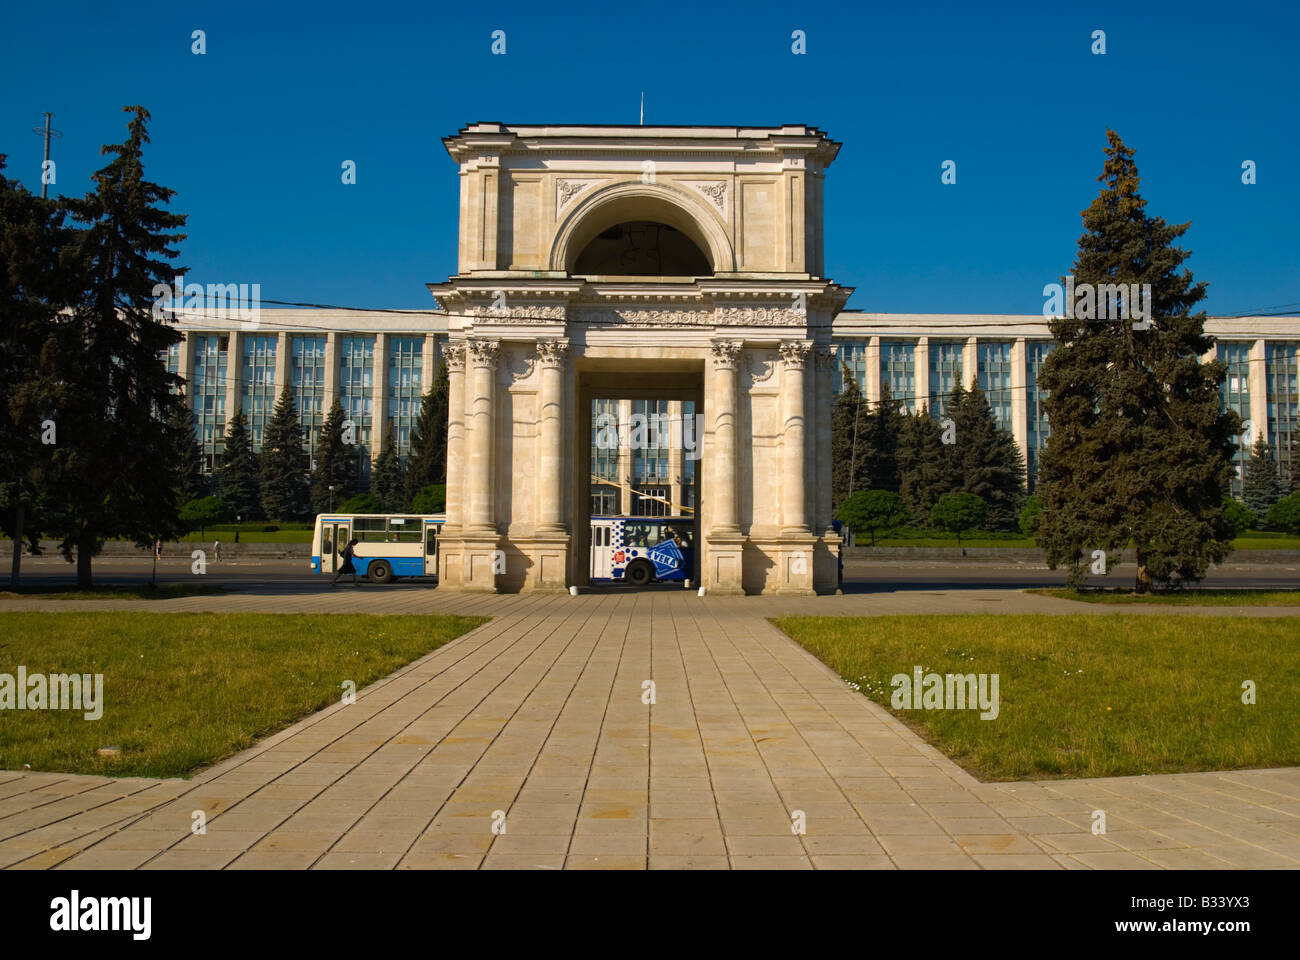 Parcul Catedralei with Arc de Triomphe in Chisinau Moldova Europe - Stock Image